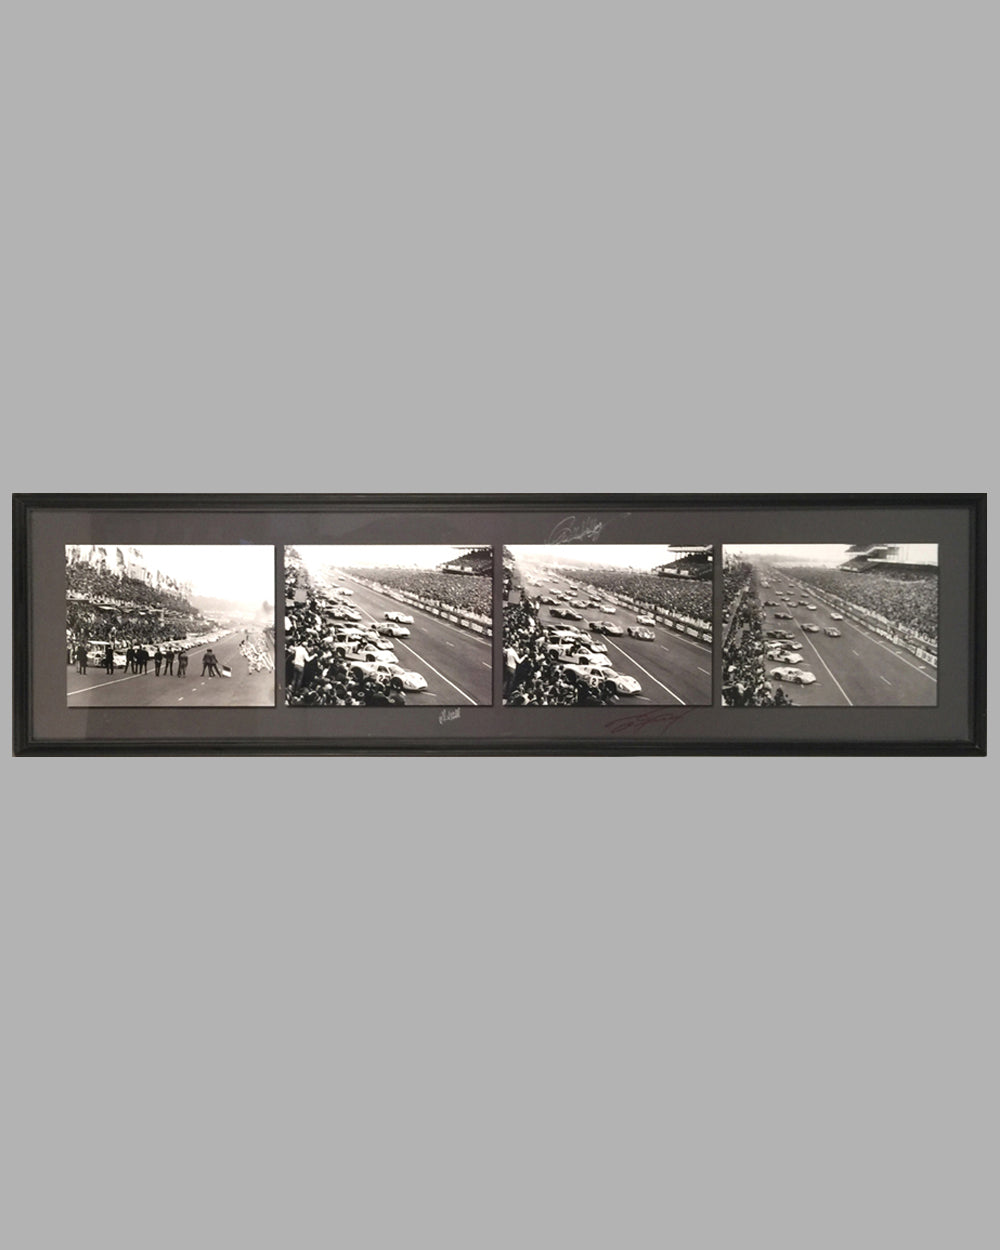 Start of Le Mans 1967, 4 photo montage